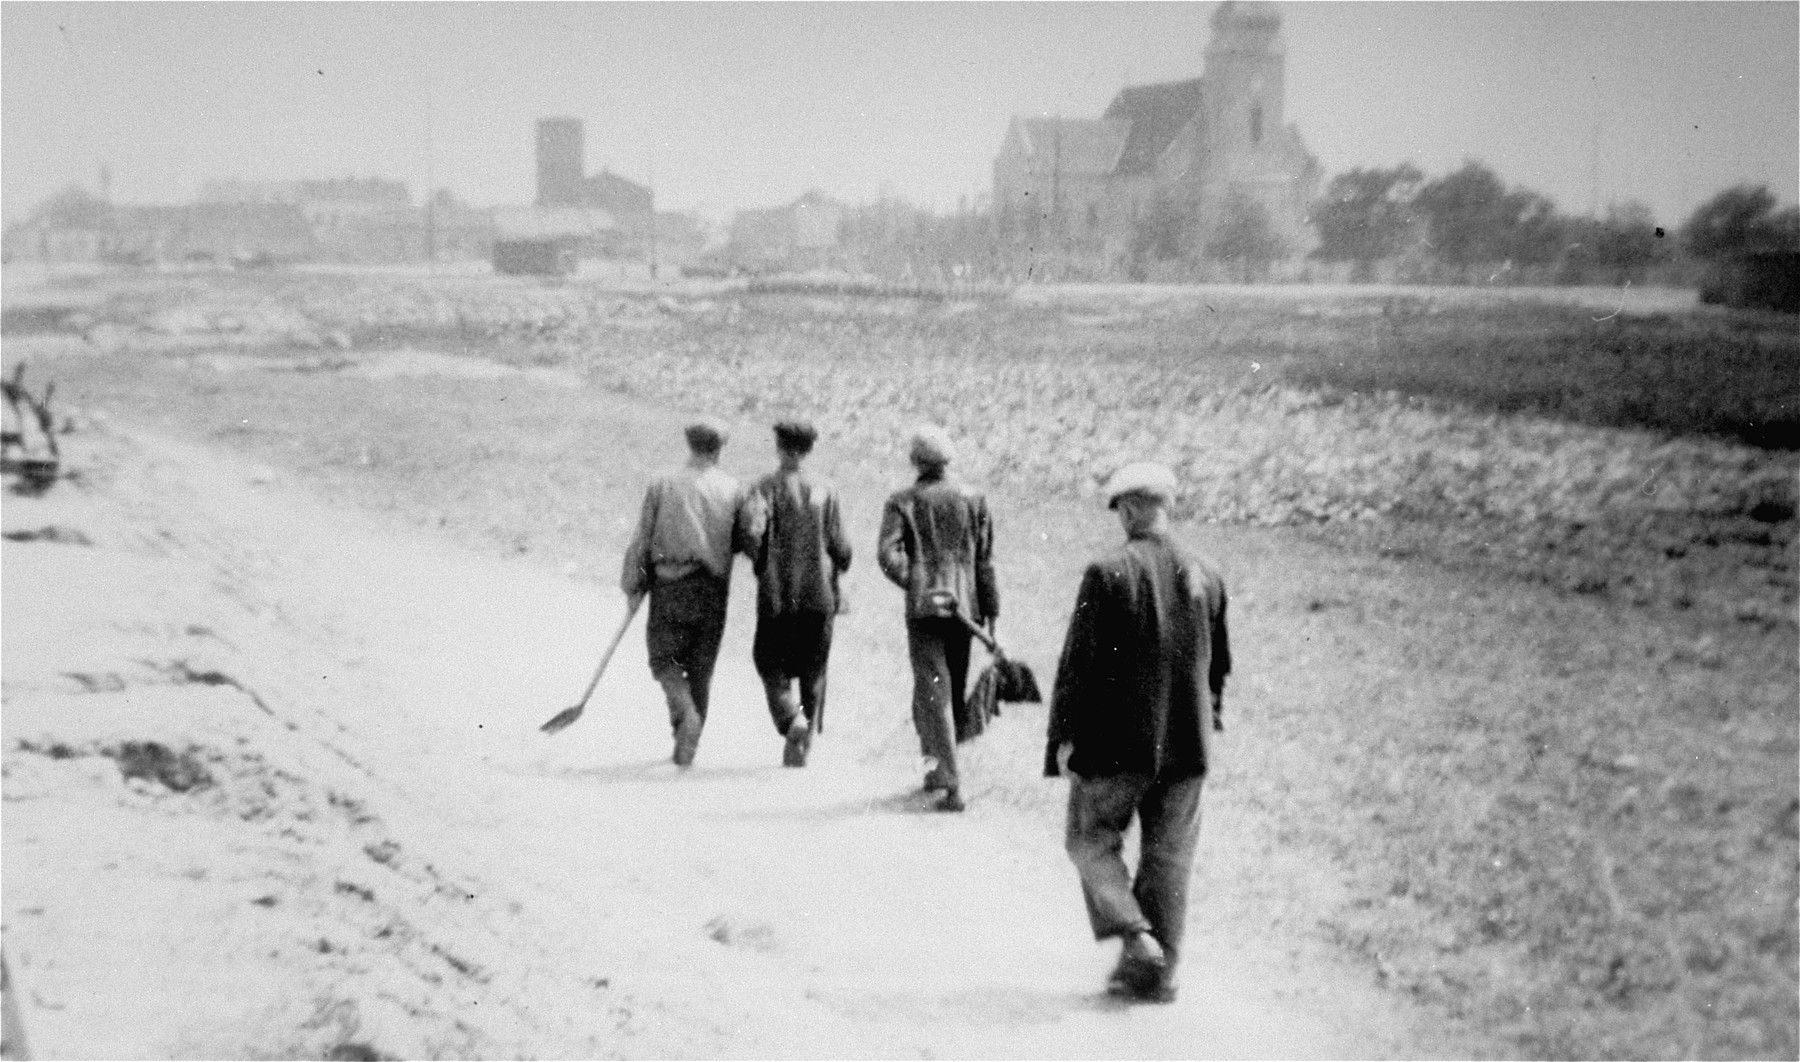 Jewish forced laborers from Belchatow walk along an unpaved road carrying shovels.